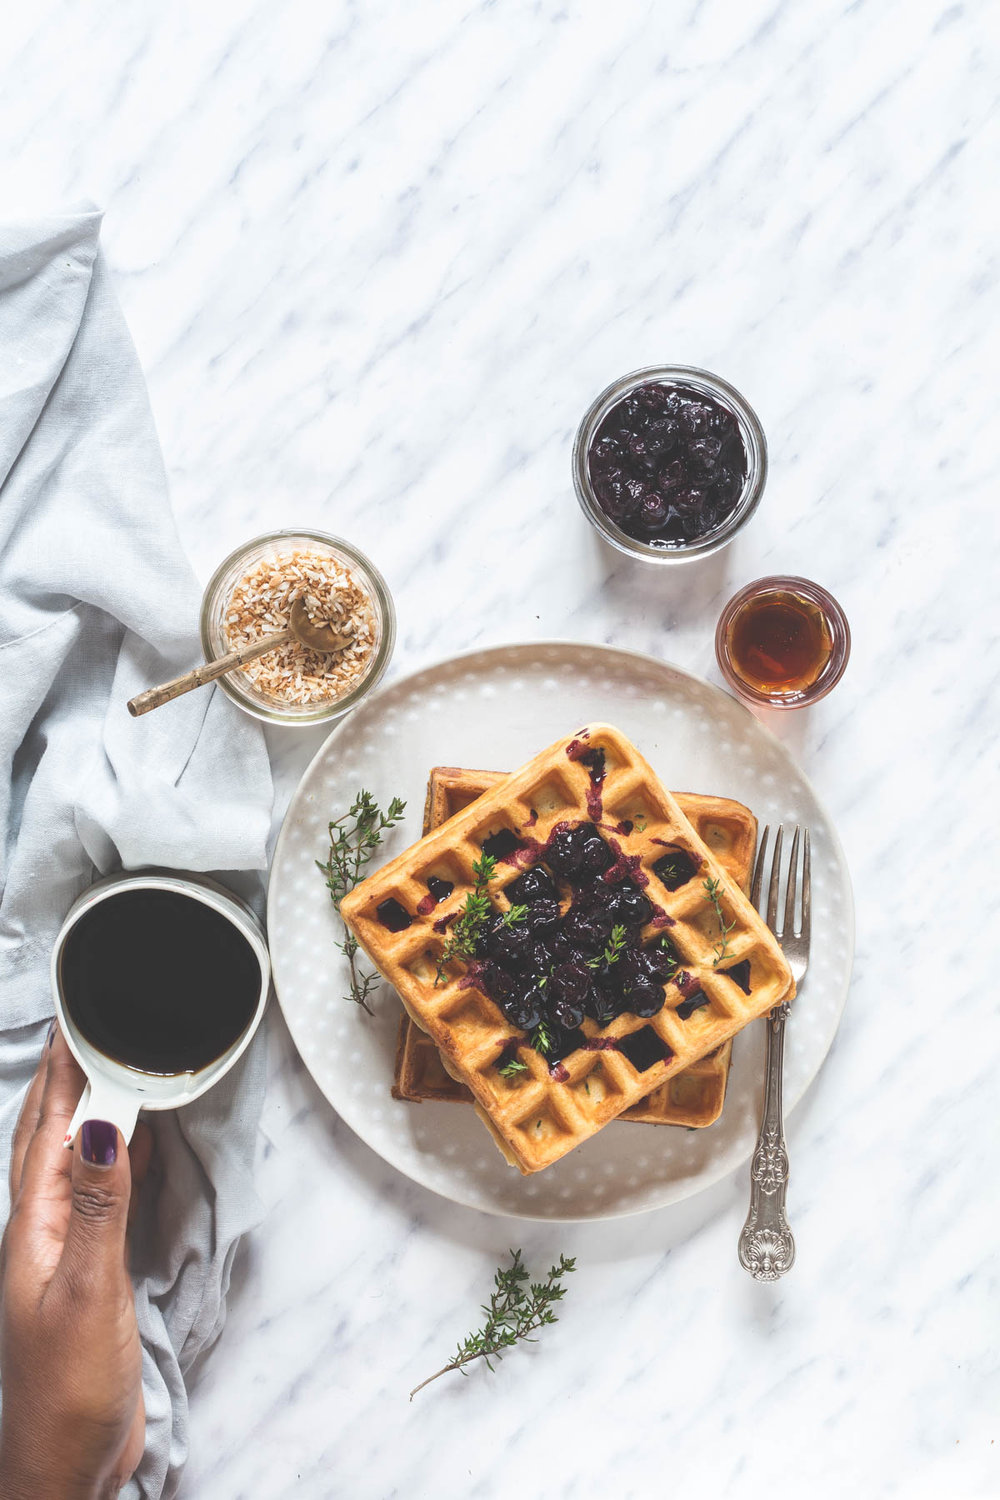 Orange & Thyme Waffles with Blueberry Compote from Recipes from a Pantry by Bintu.